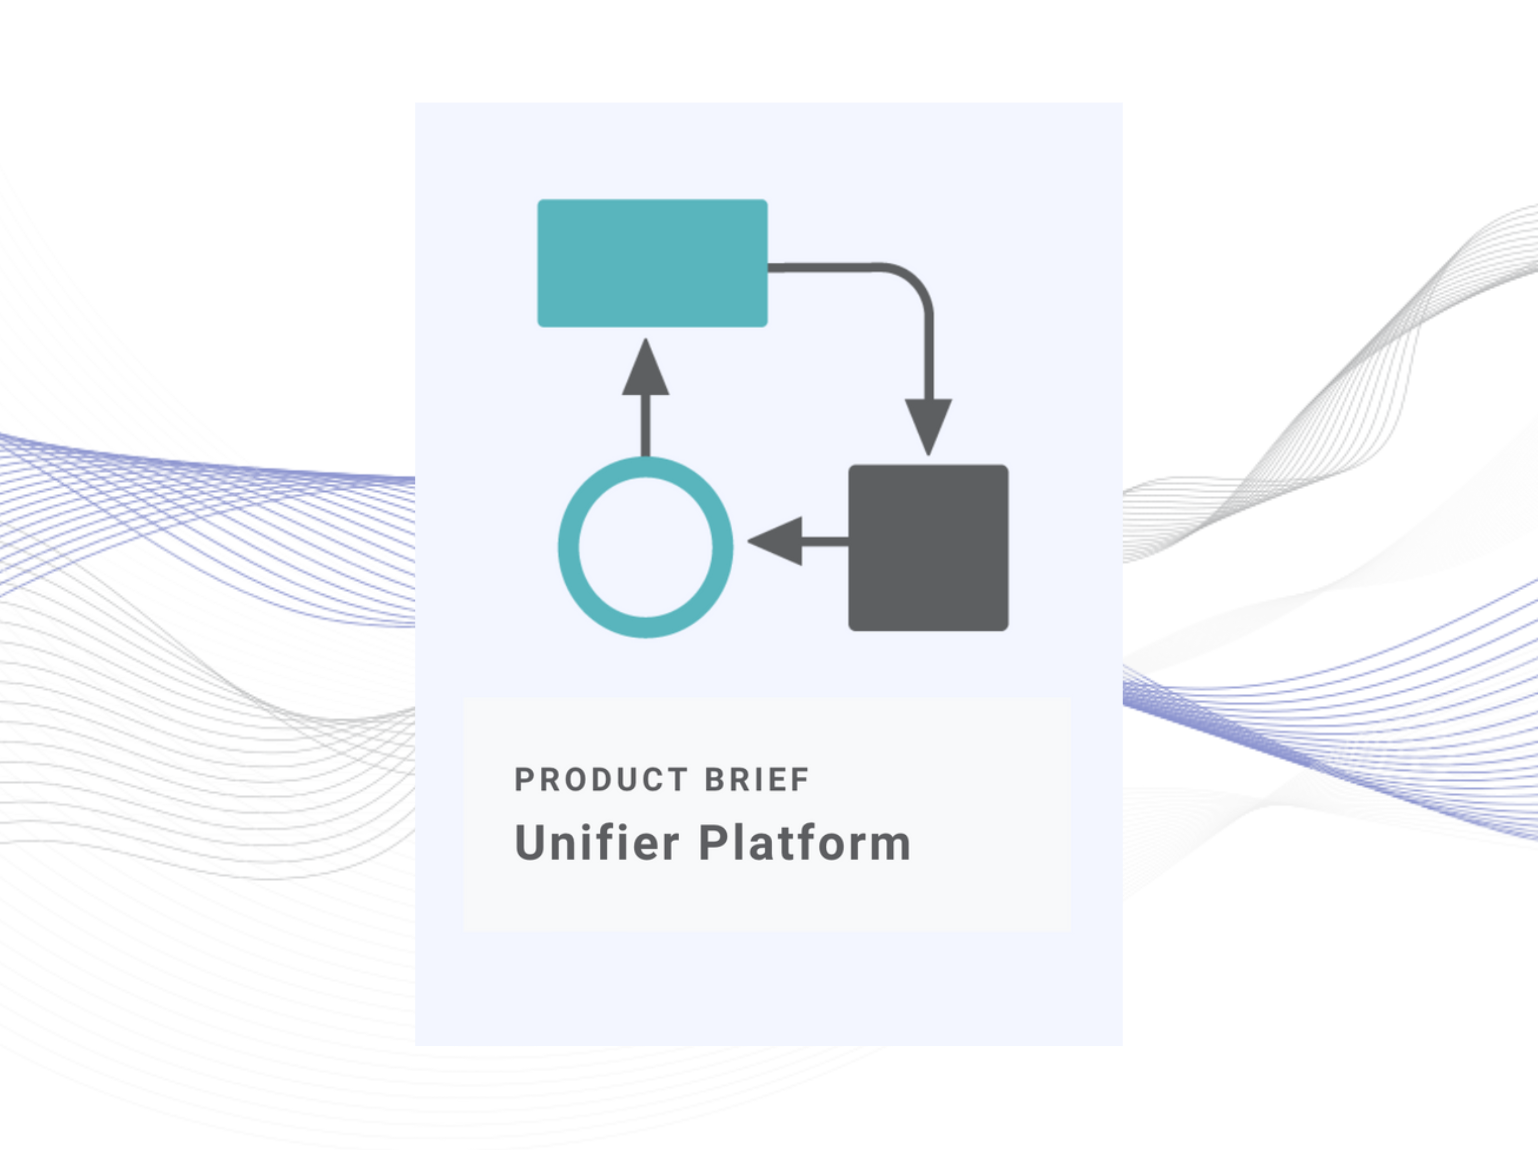 Unifier Product Brief